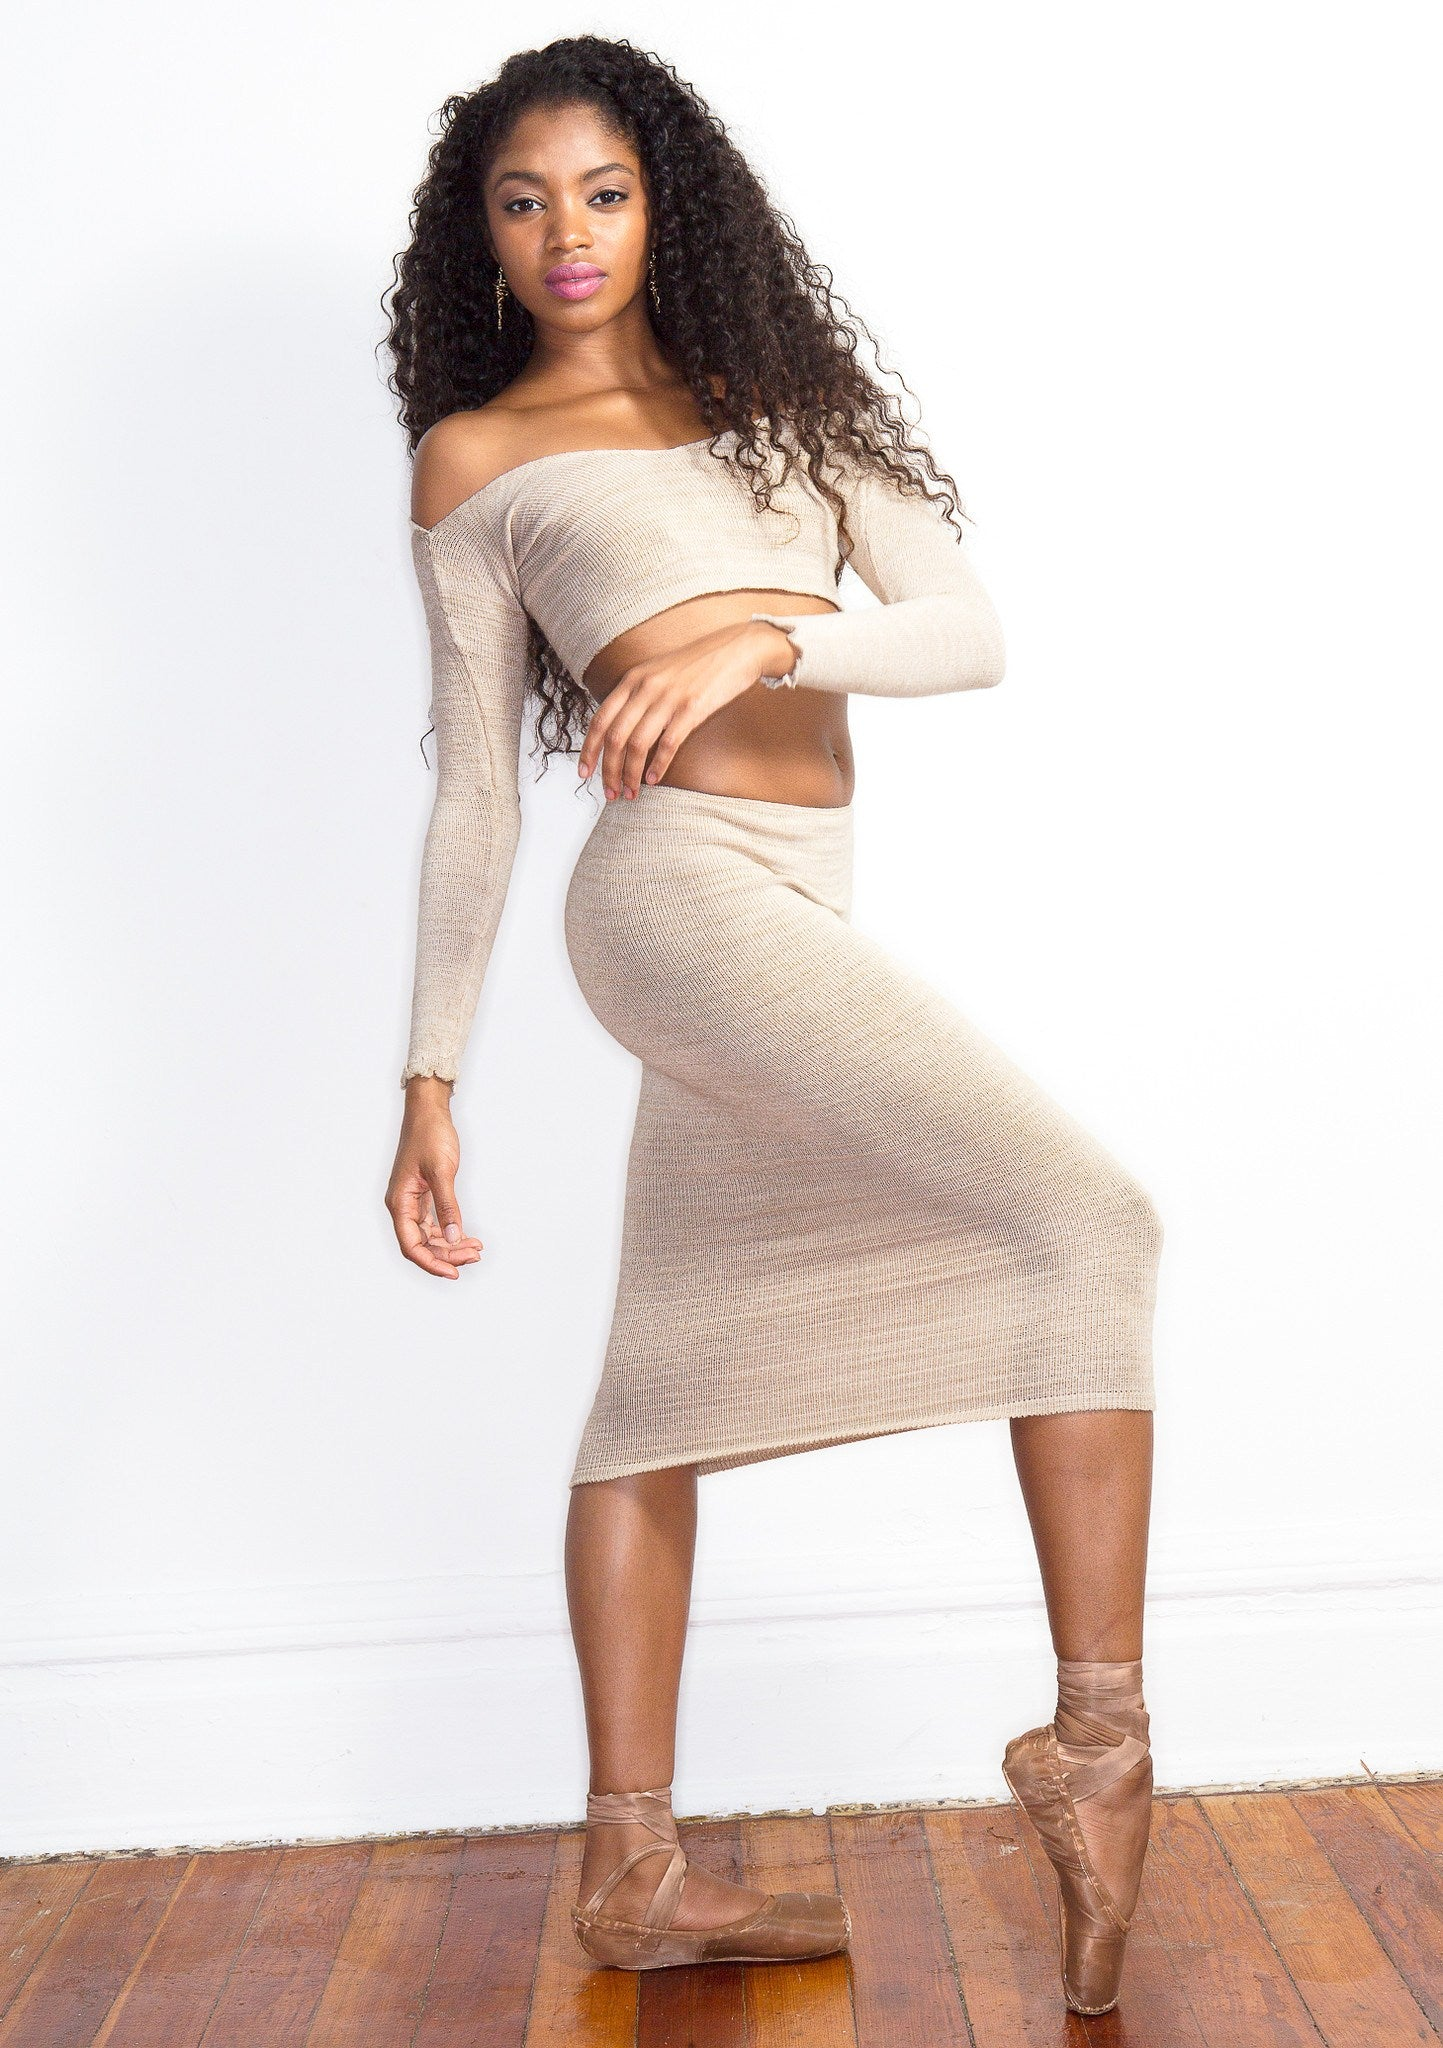 Sexy Sweater Dress Set Off The Shoulder Stretch Knit Crop Top & Knee High Tube Skirt by KD dance New York Cozy & Fashionable @KDdanceNewYork #MadeInUSA - 3